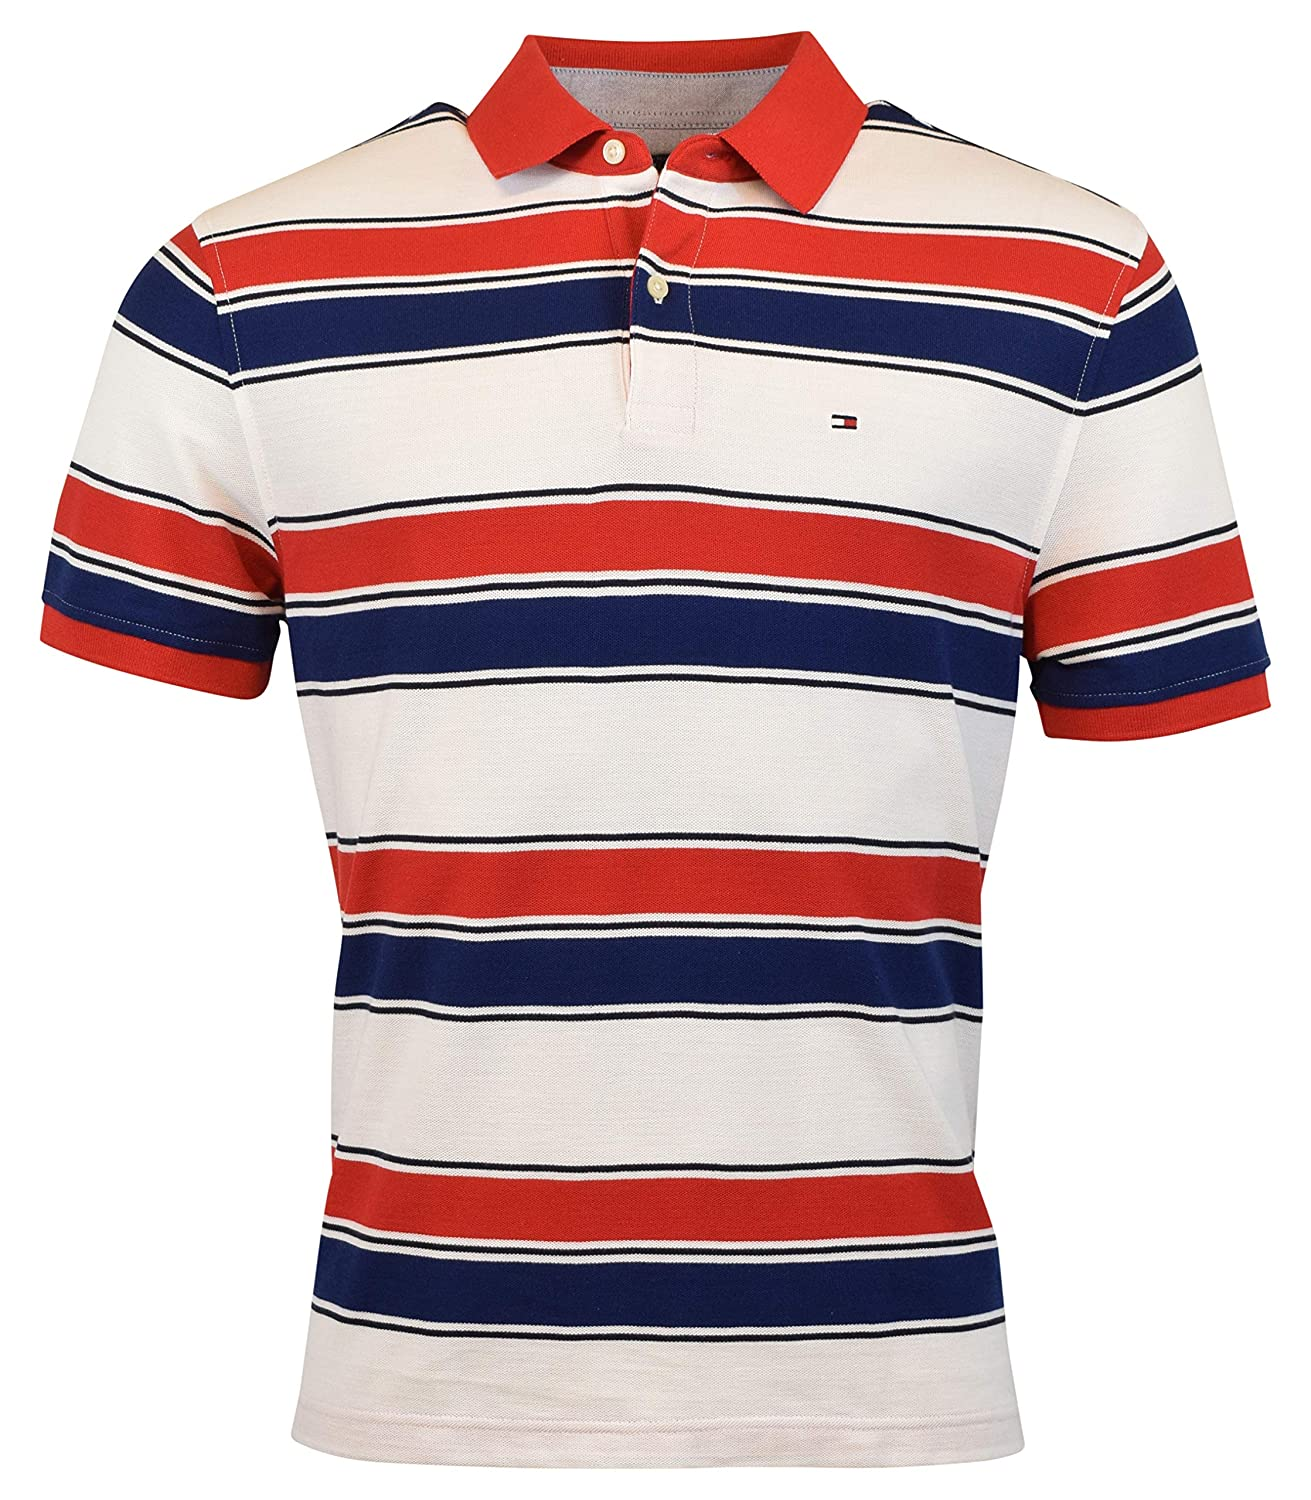 aba17588 Tommy Hilfiger Men's Regular Fit Performance Pique Cotton Polo Shirt at  Amazon Men's Clothing store: